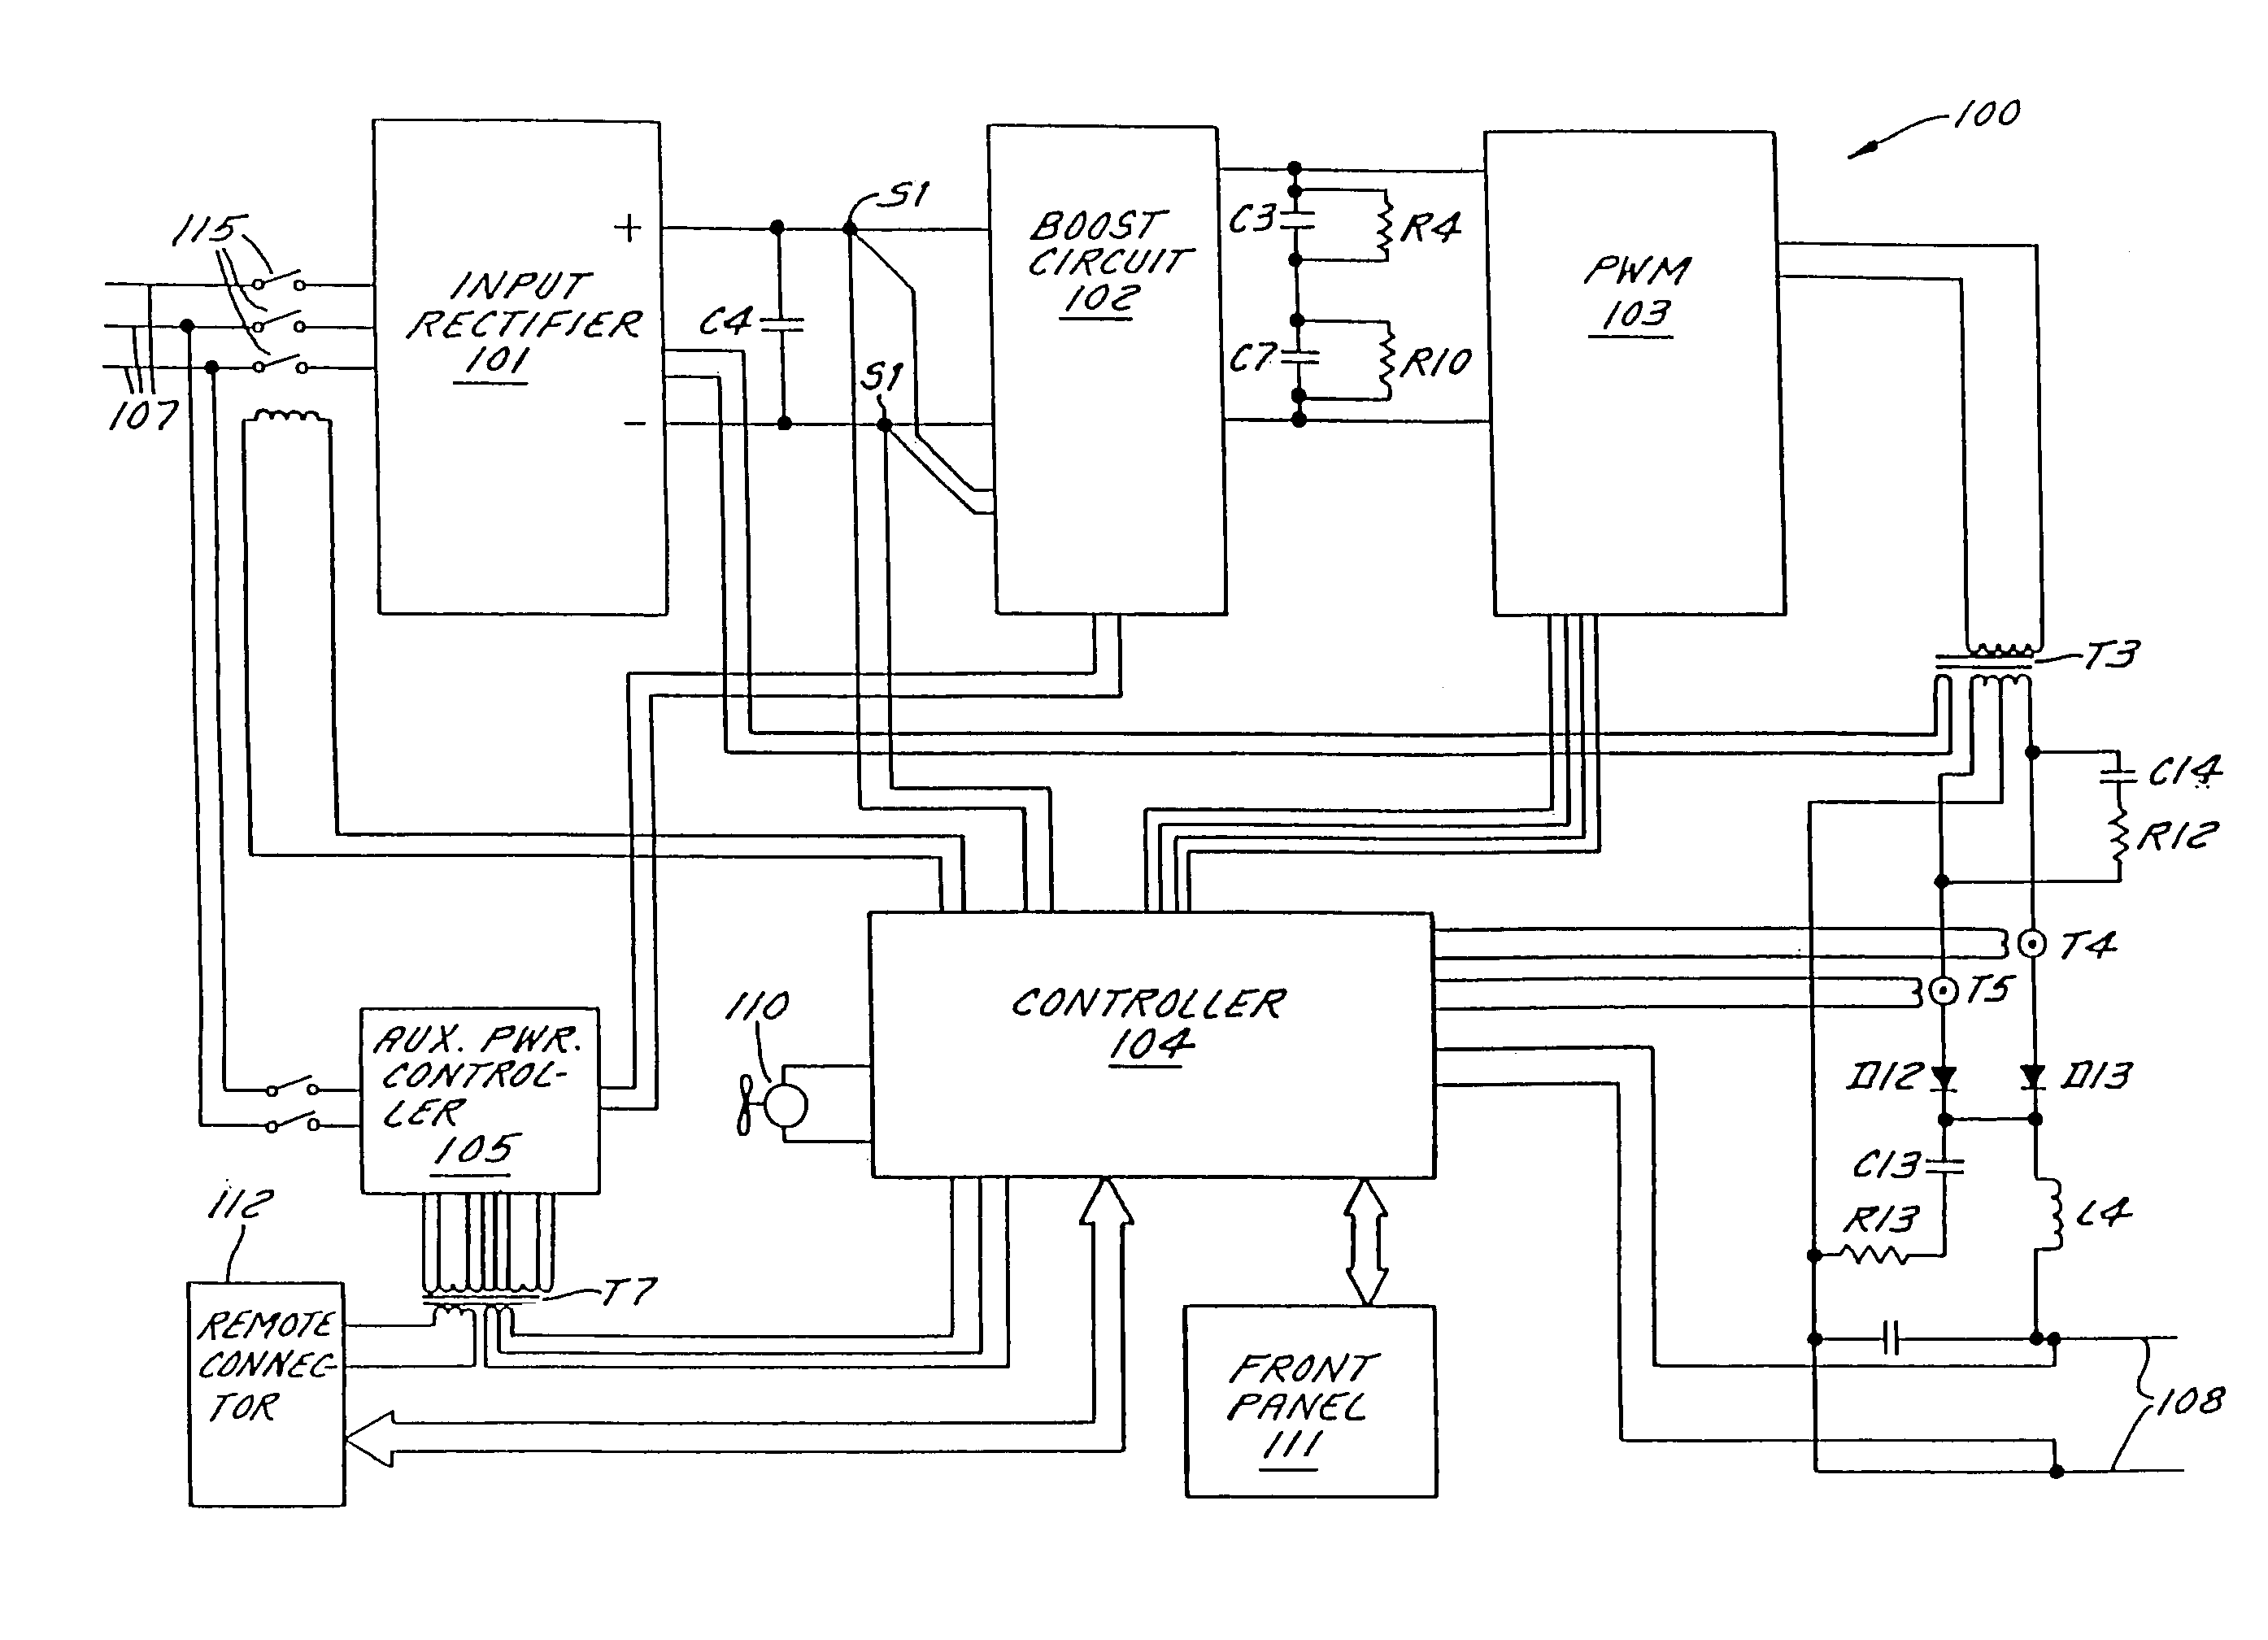 Lincoln Sa200 F163 Wiring Diagram Page 2 And Sa 200 Engine Source Remote Get Free Image About Switch